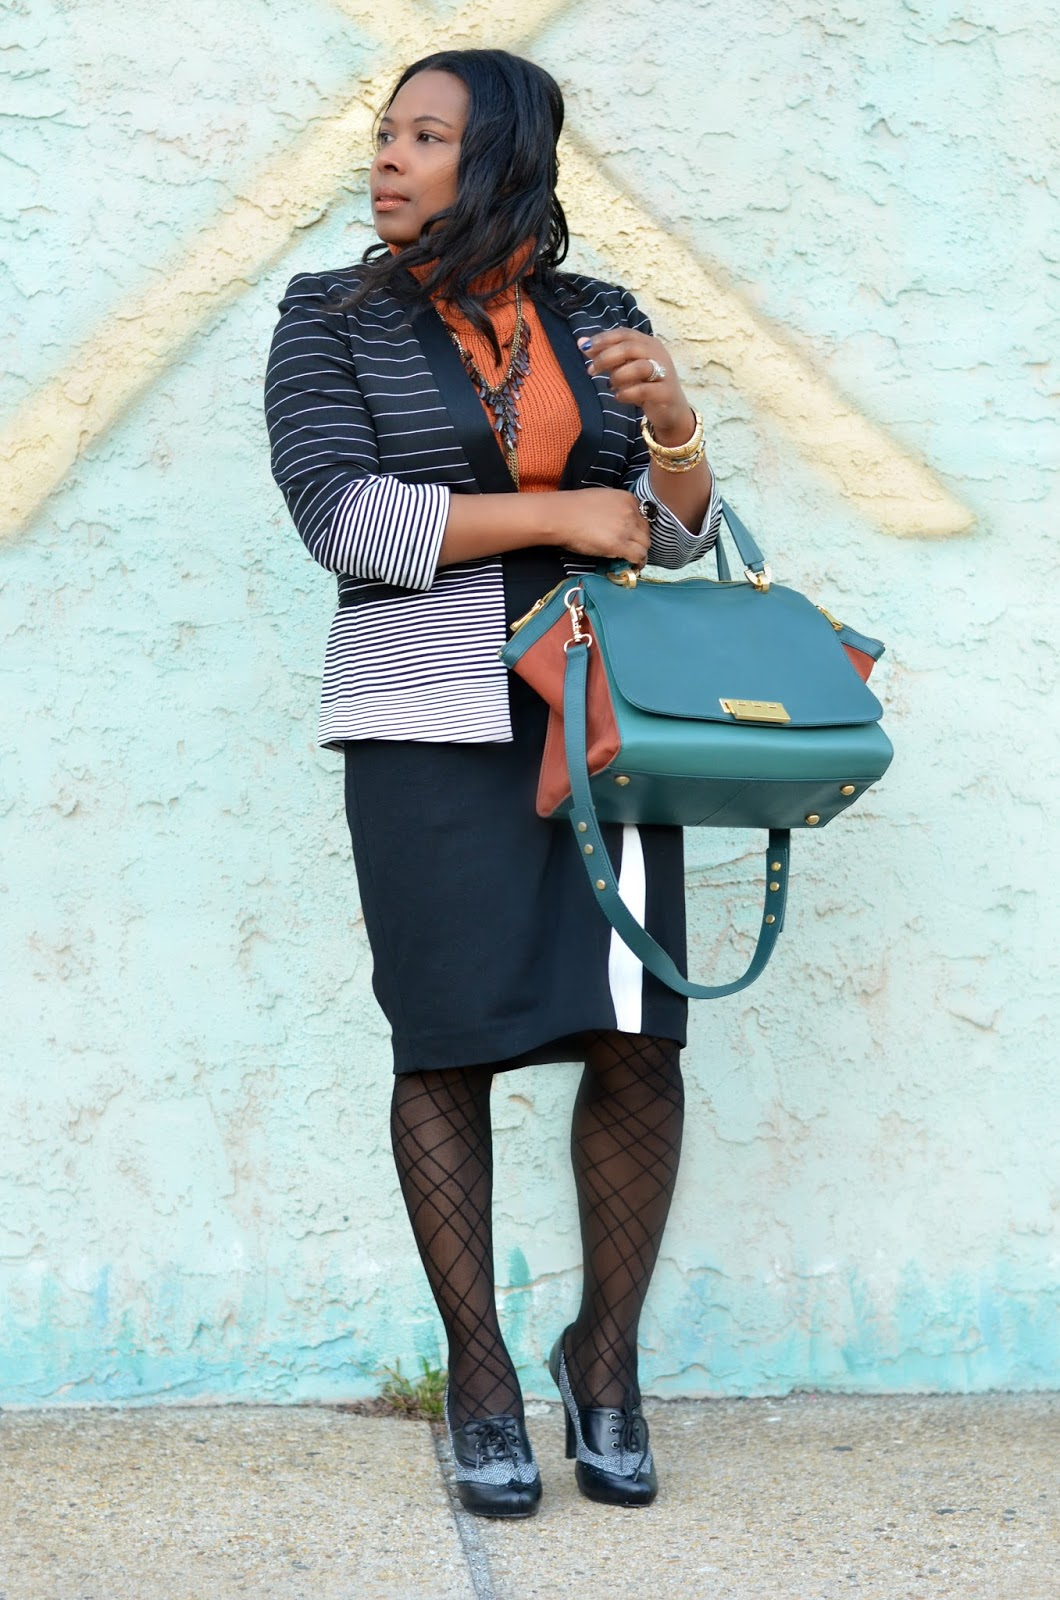 Saks-Fifth-Avenue-Pencil-Skirt-Nordstrom-Stripe-Blazer-Zac-Posen-Bag-Bronze-Lip-Color-Houndstooth-Two-Tone-Heels